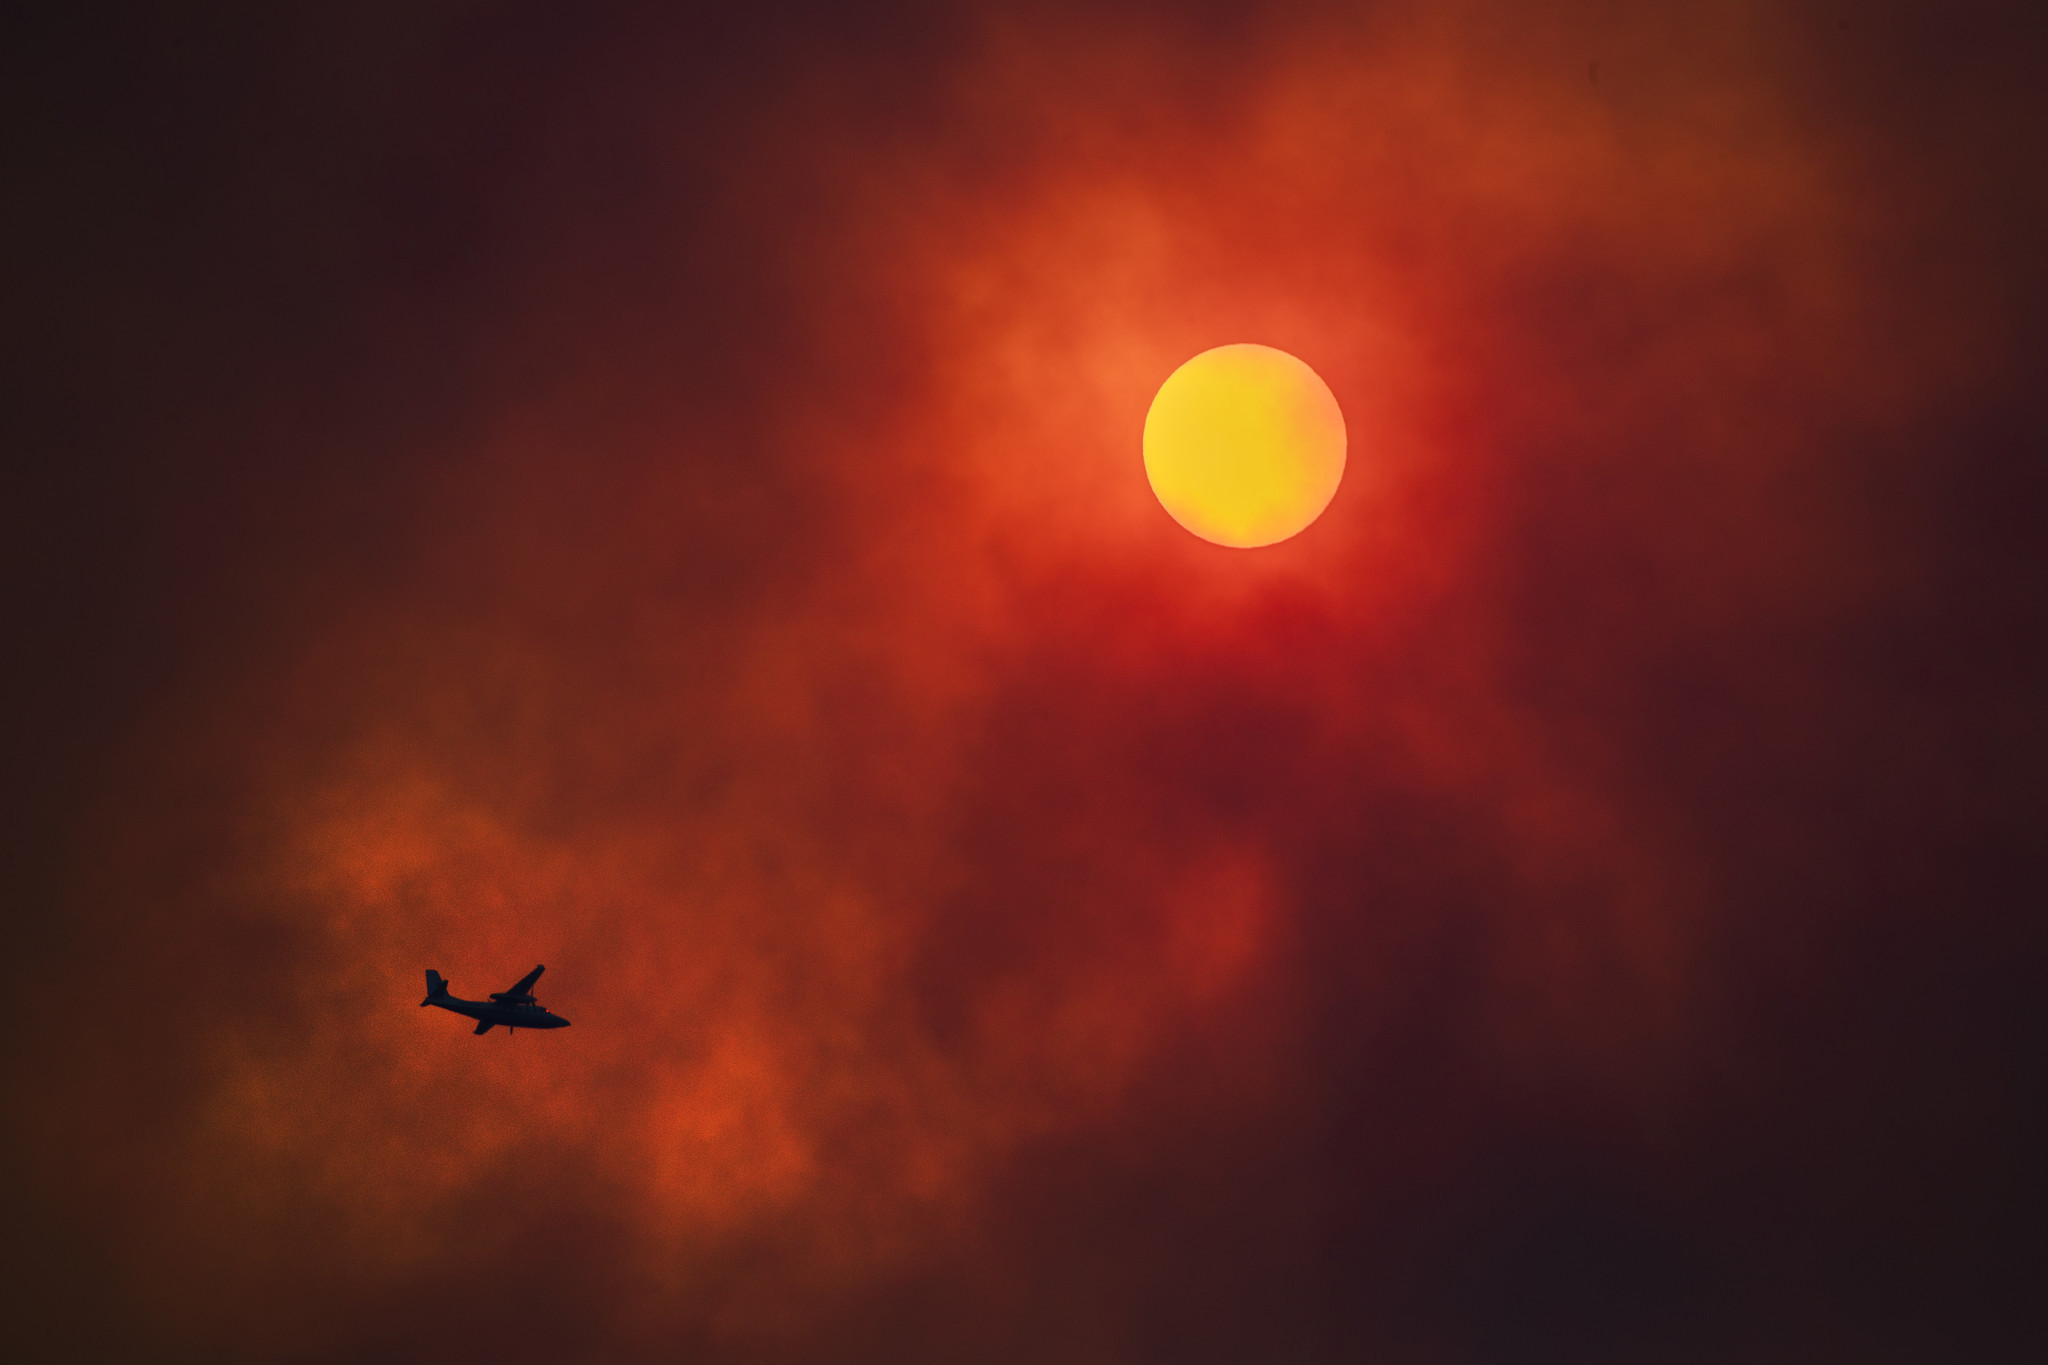 LAKE ELSINORE, CALIF. — TUESDAY, AUGUST 7, 2018: Heavy smoke obscures the sun as a fire aircraft wo